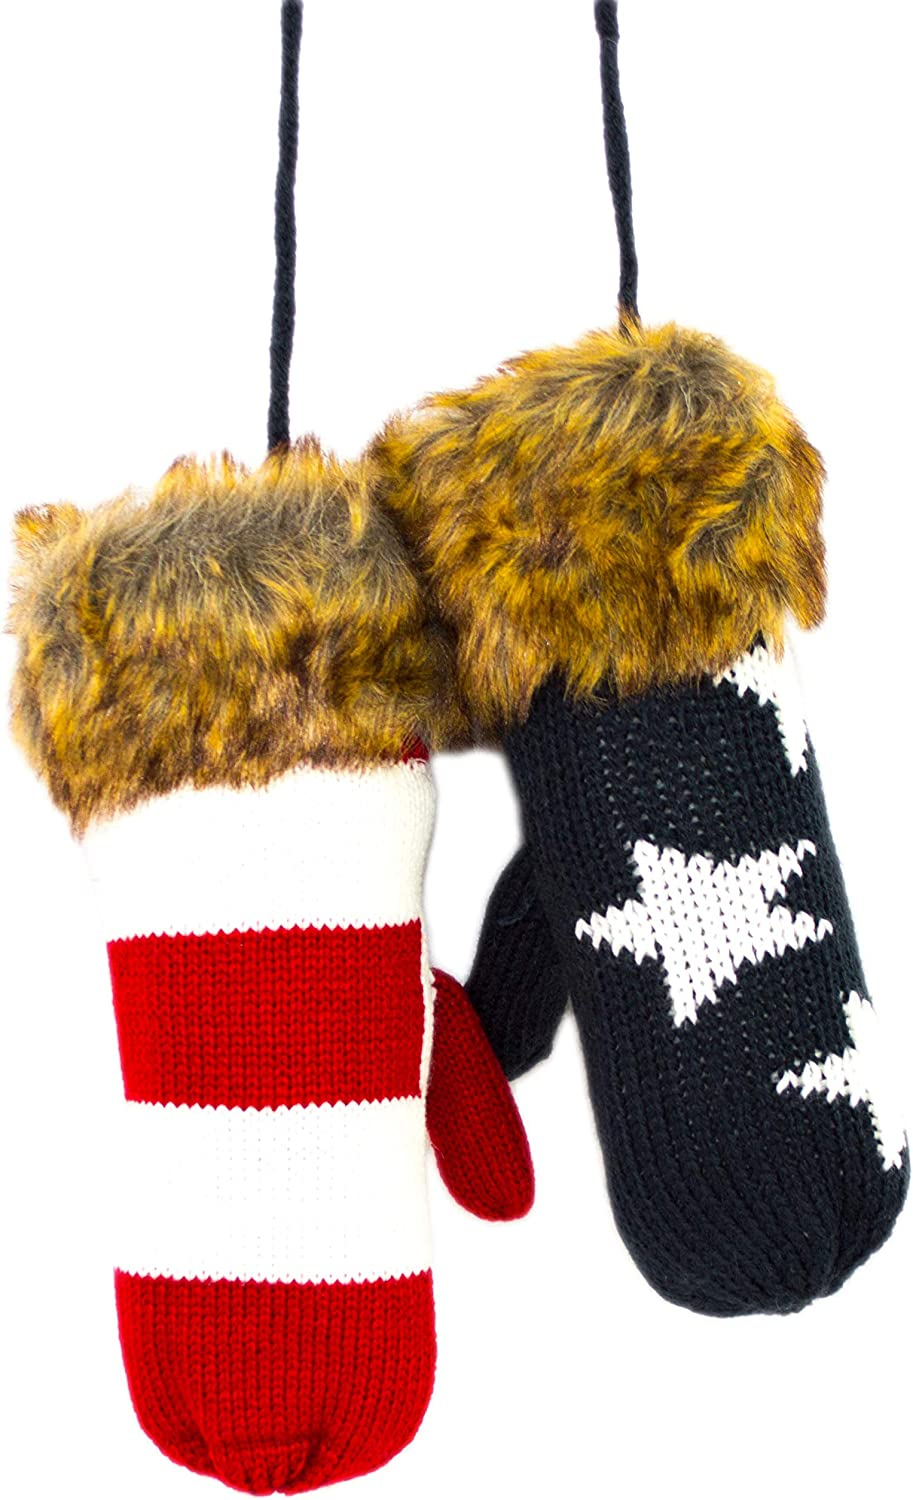 American Flag Warm Knit Mittens with String, Faux Fur Cuff Stars and Stripes Pattern Mittens for Women